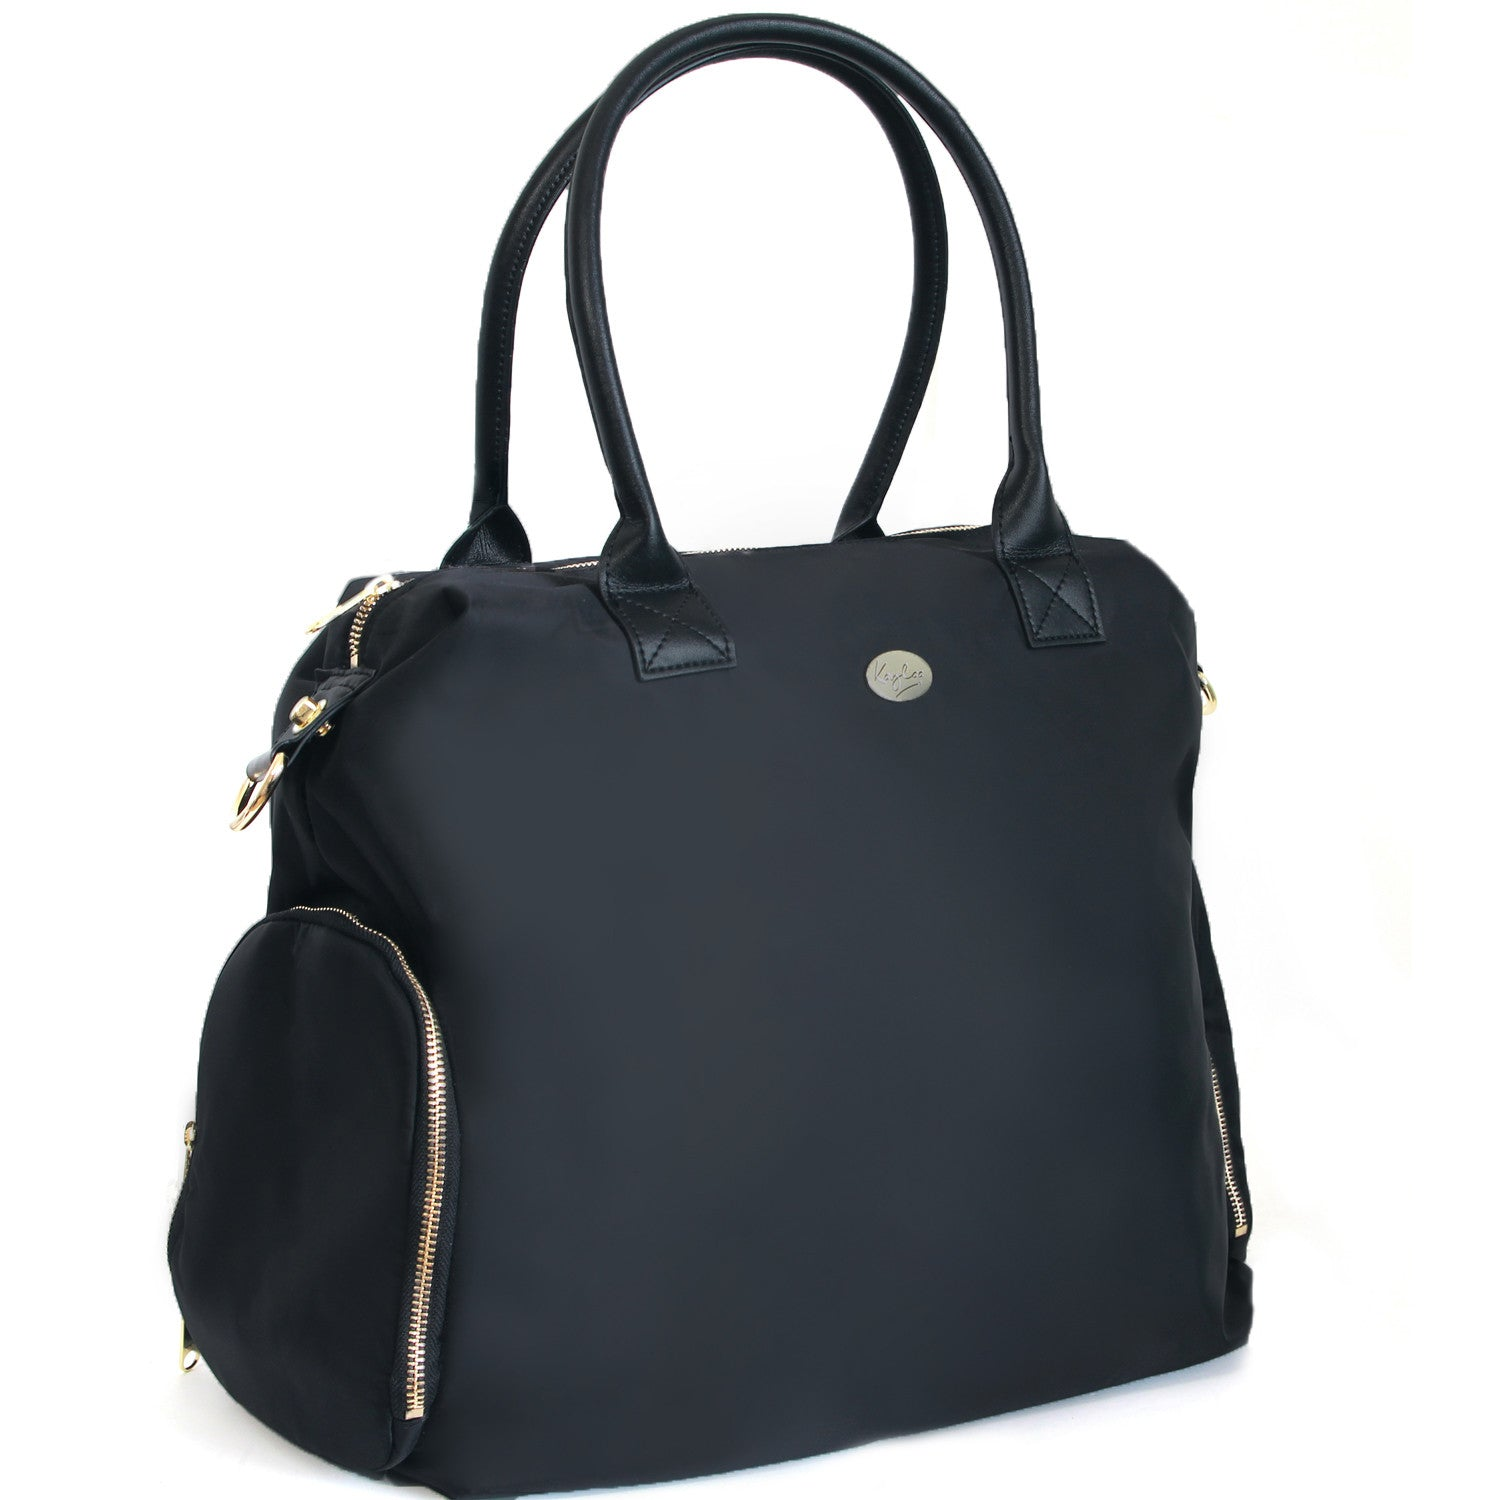 Kaylaa Premium Breast Pump Bag (Classic Black)